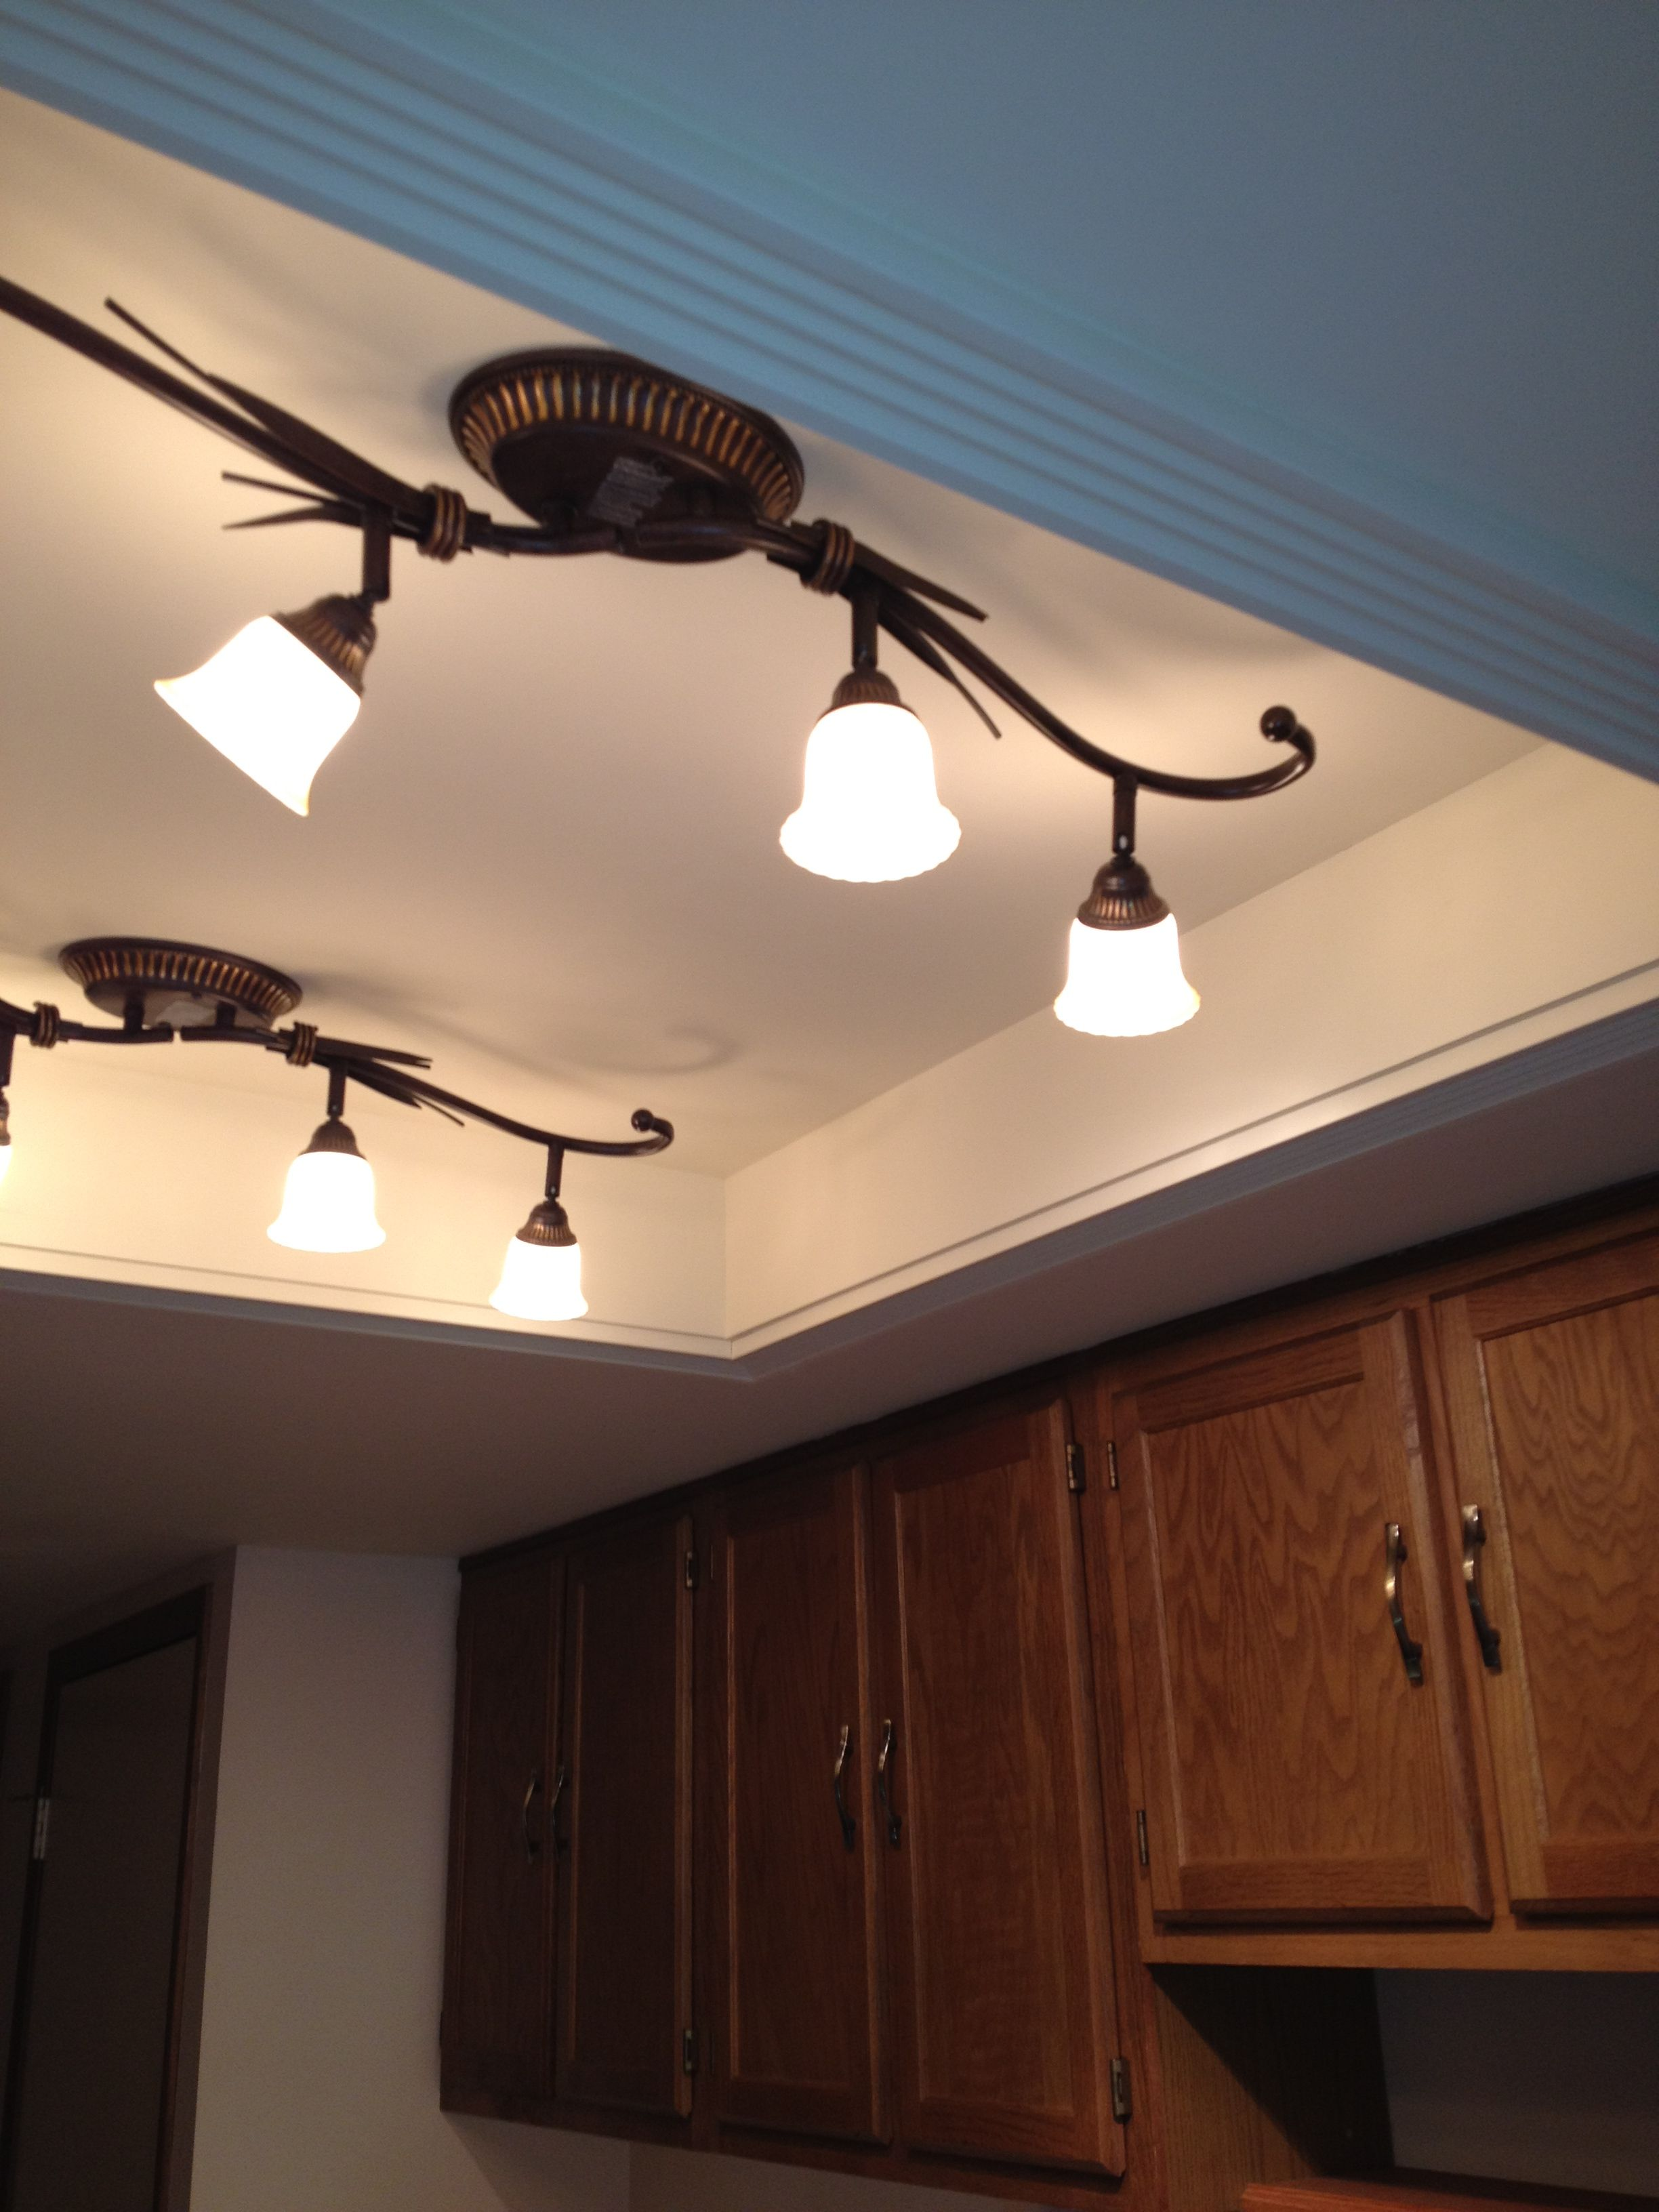 Convert that ugly recessed fluorescent ceiling lighting in your kitchen to a beautiful trayed ceiling